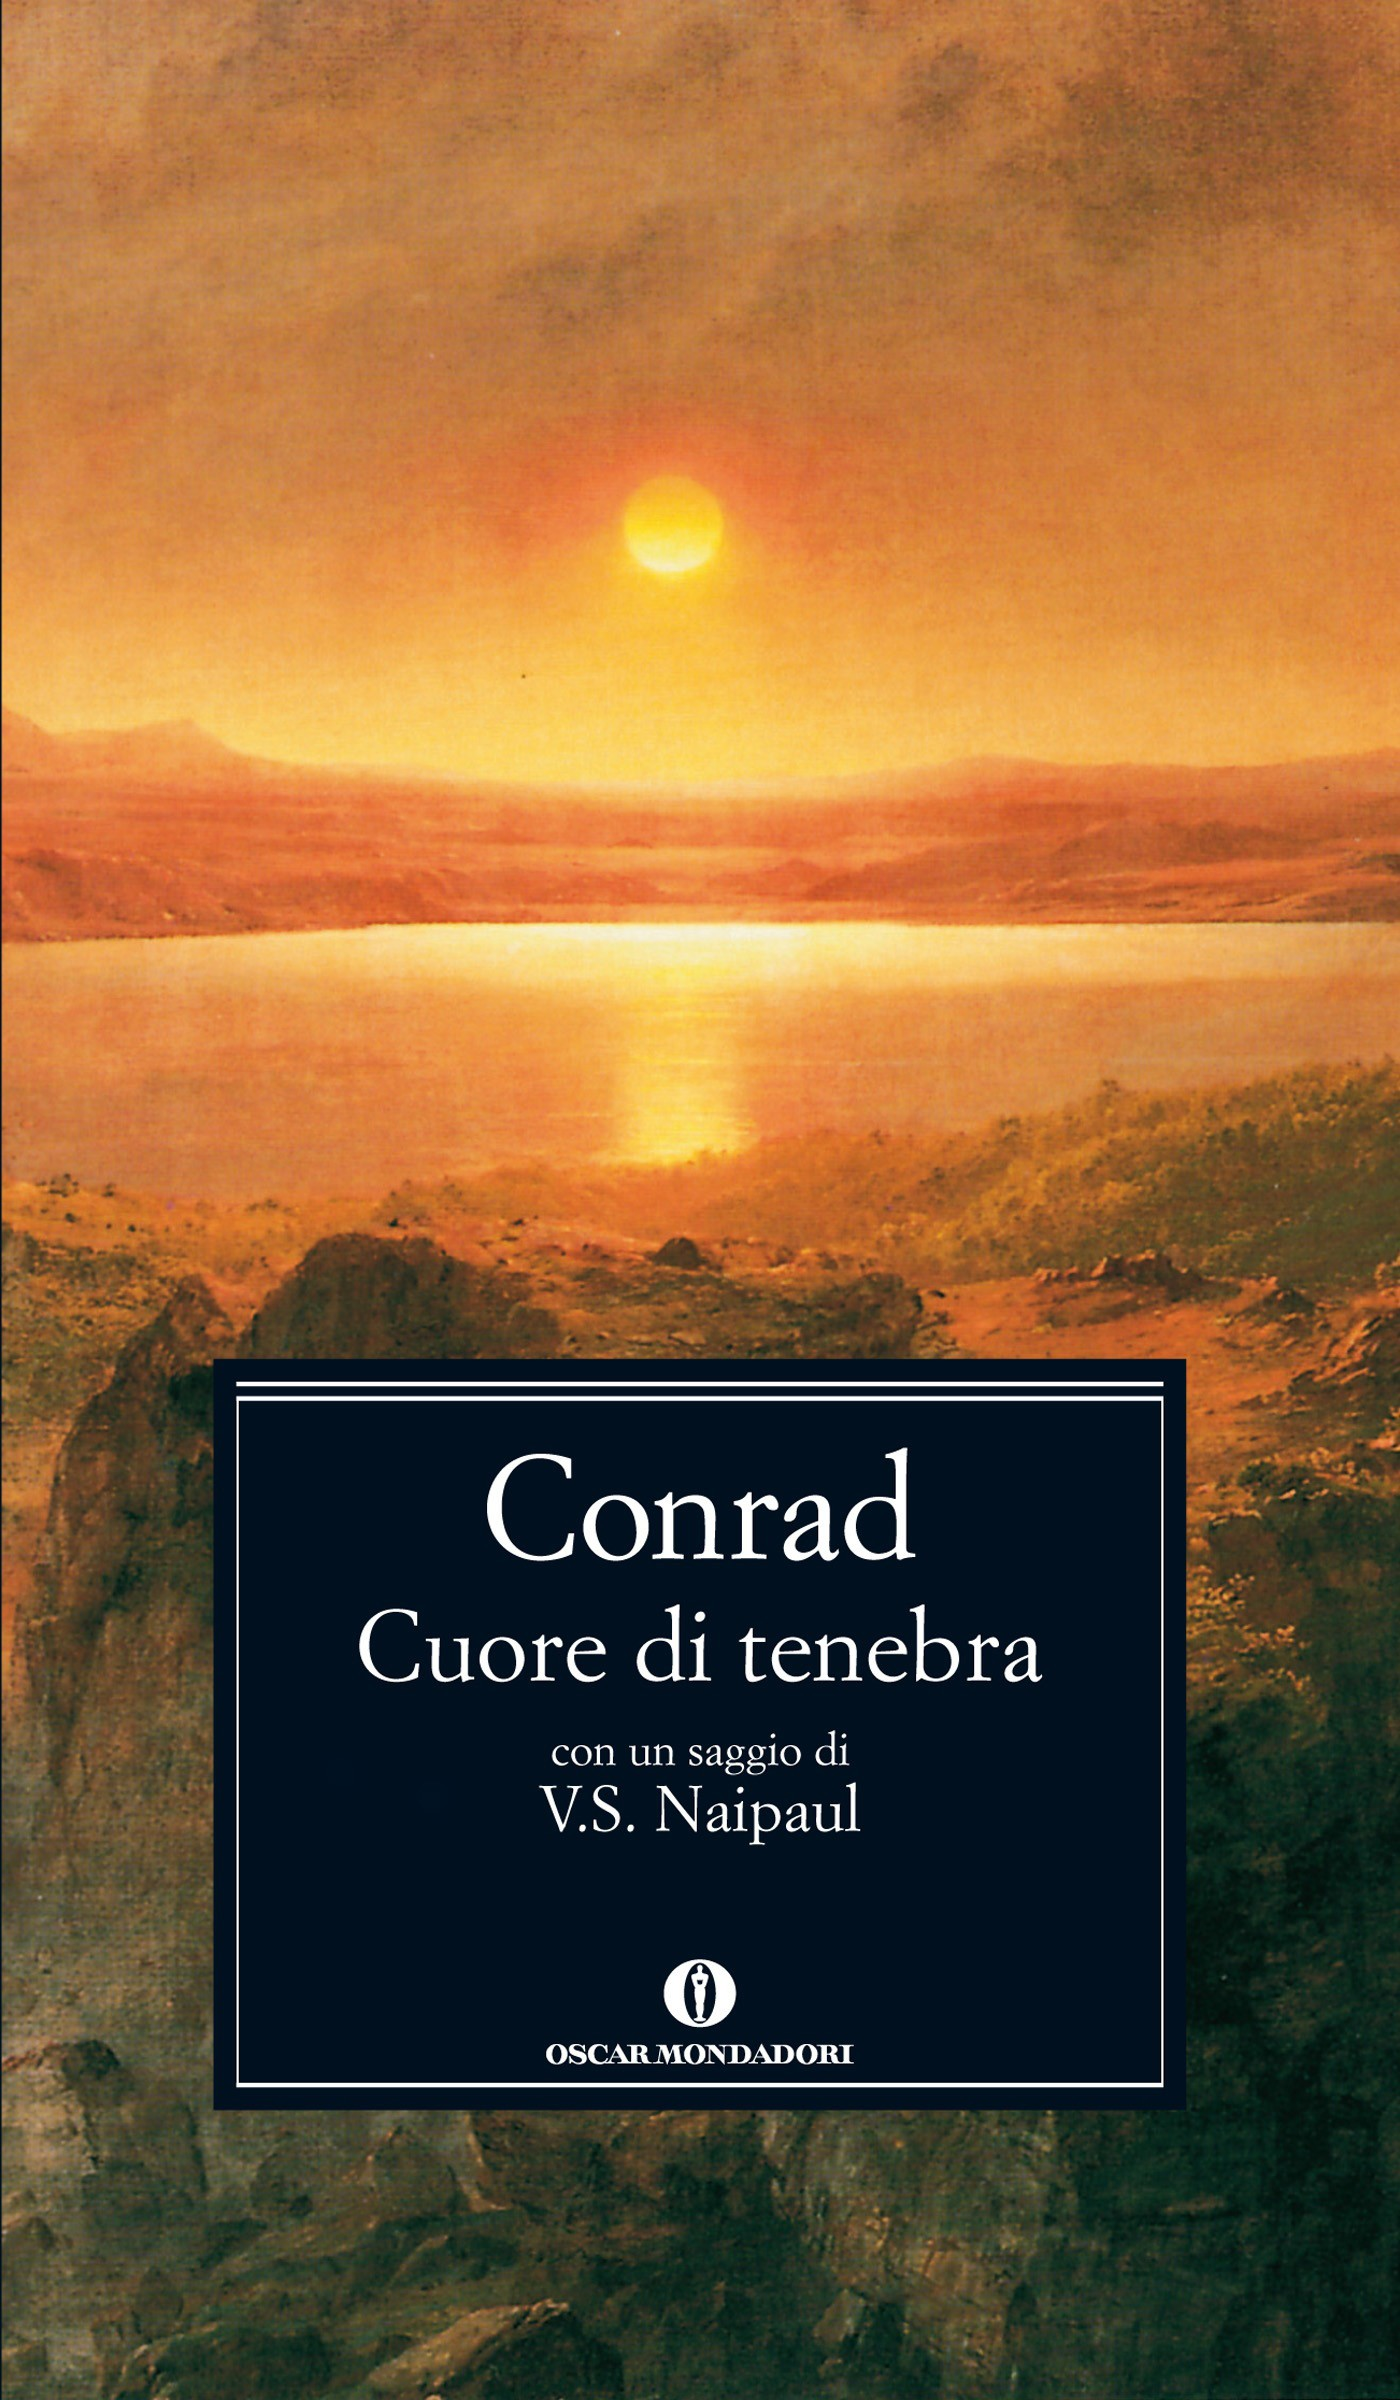 http://alessandria.bookrepublic.it/api/books/9788852010866/cover